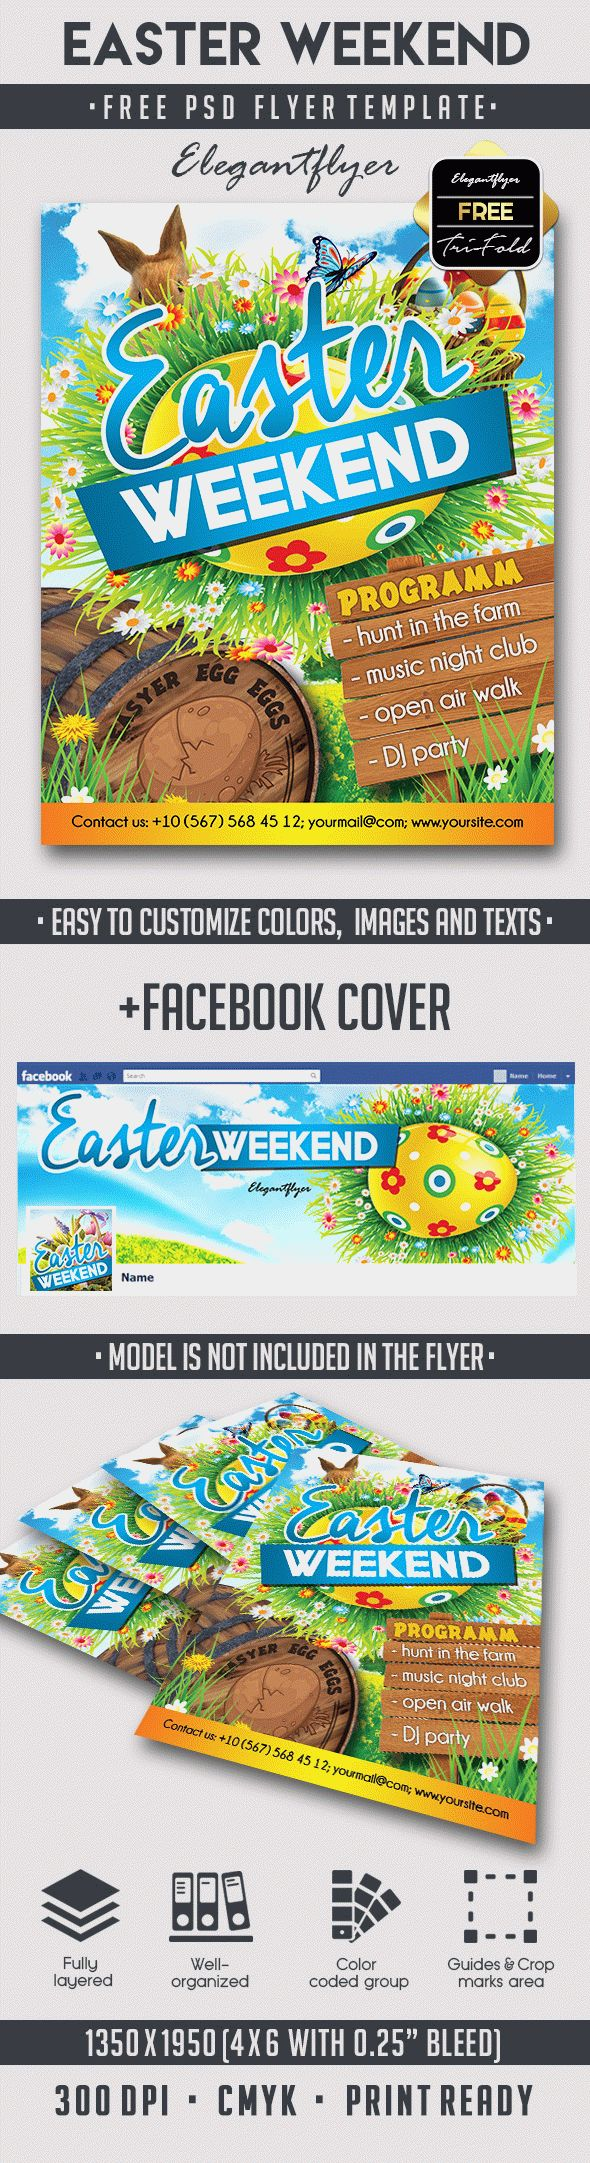 Easter Weekend – Free Flyer PSD Template + Facebook Cover